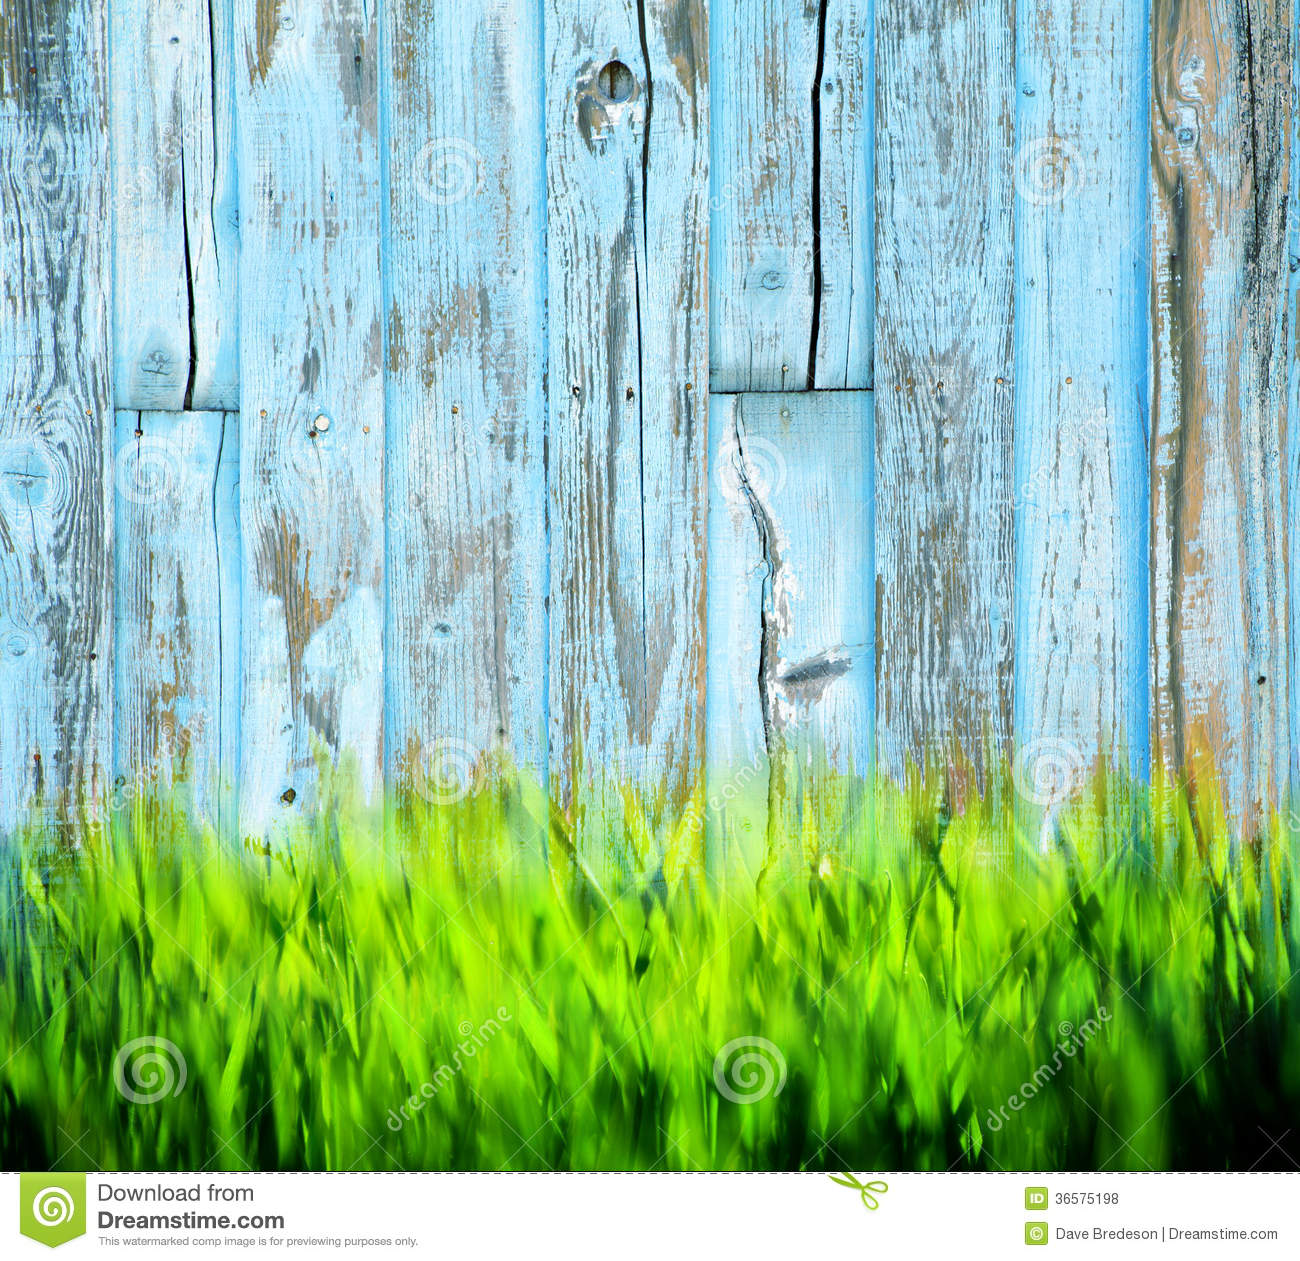 Rustic Wood Fence Background grass painted wood background royalty free stock photos - image